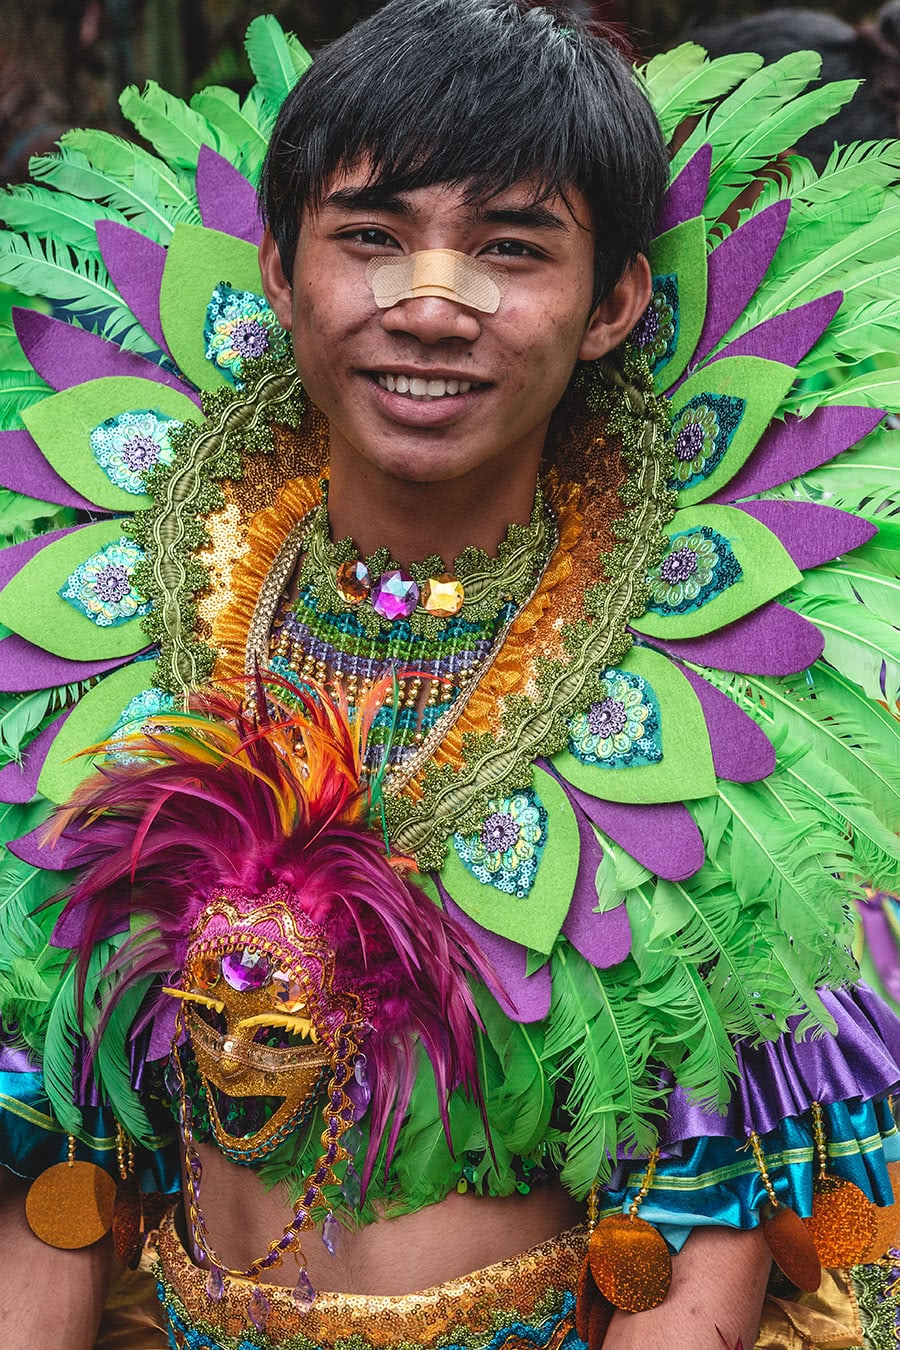 Performer at the Bacolod Masskara Festival in the Philippnes.